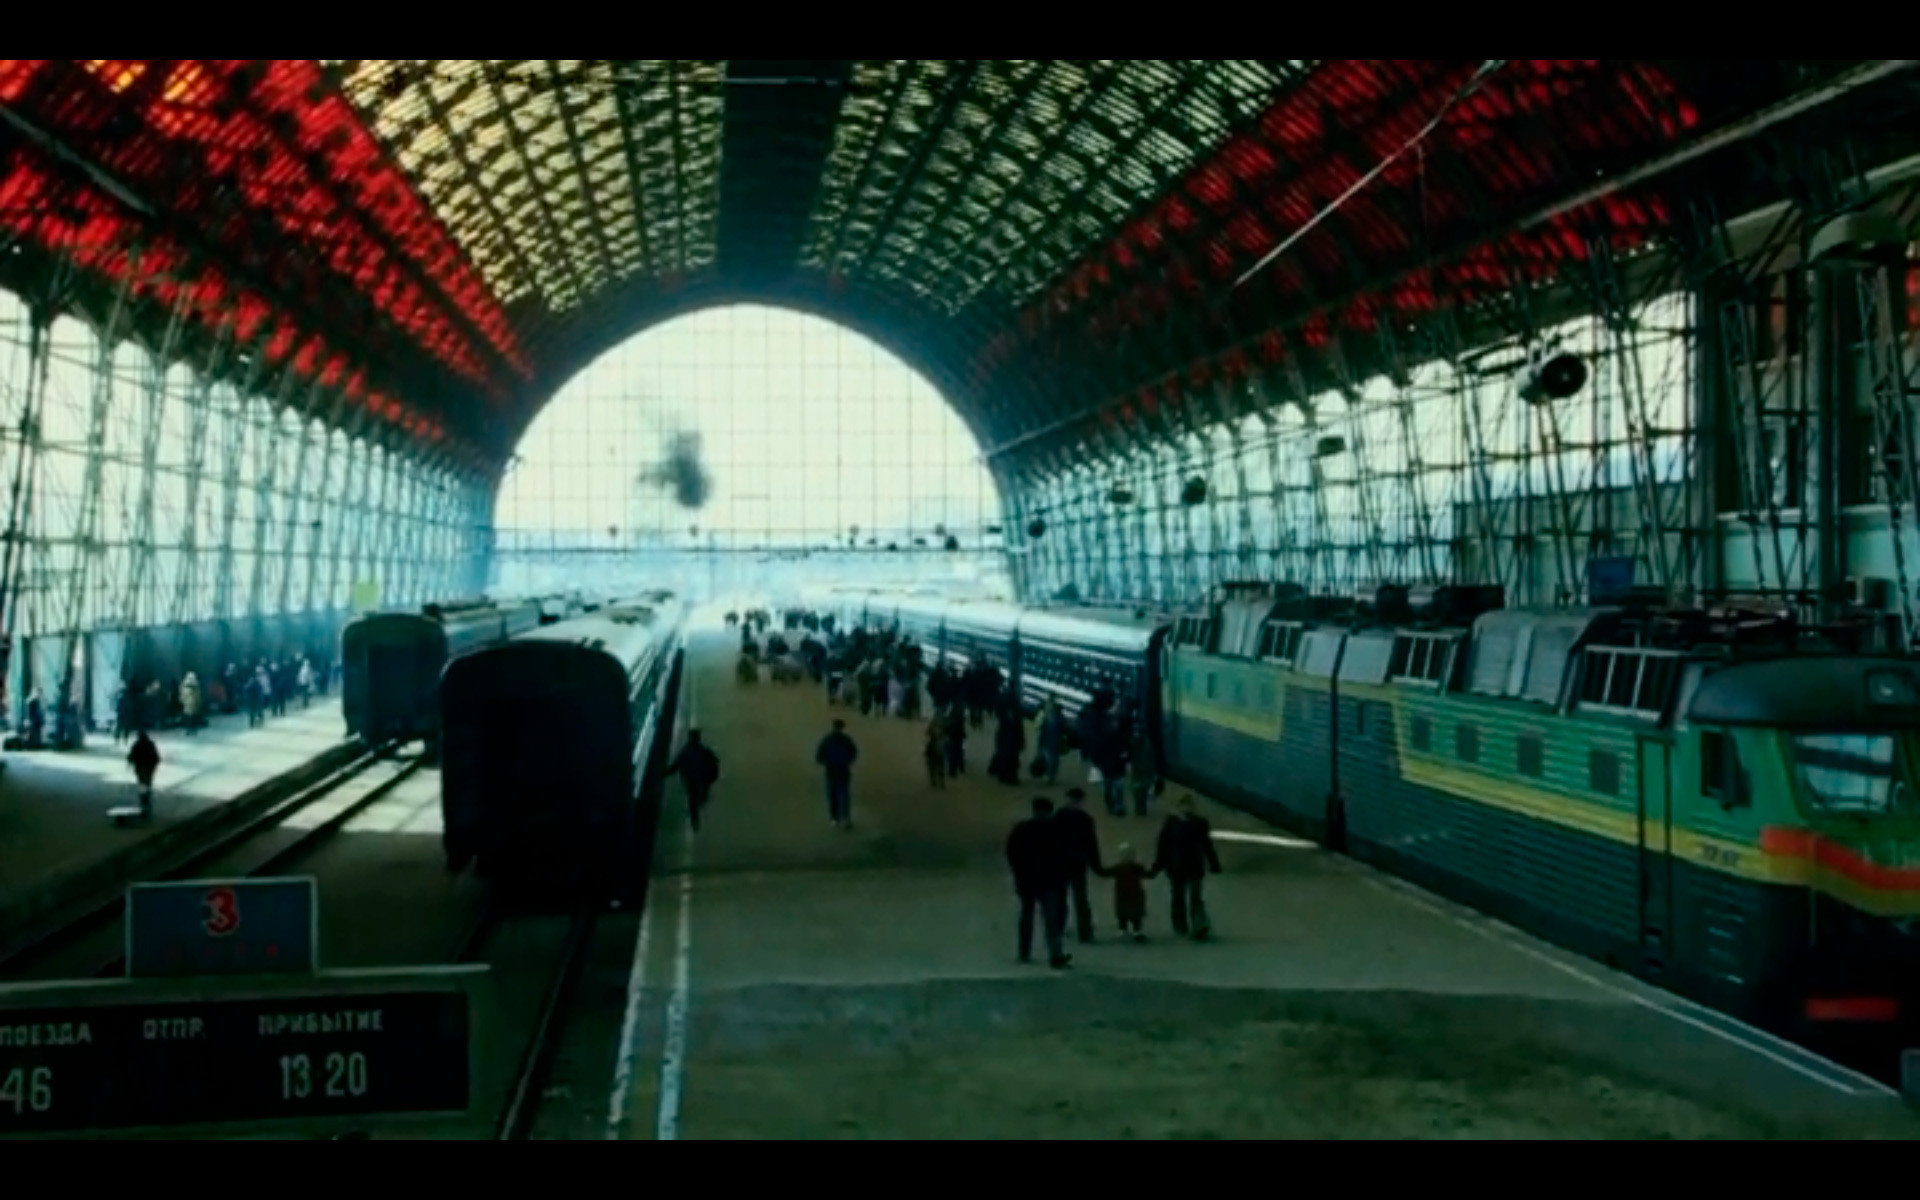 La gare de Kiev de 2014 dans le film Golden Eye